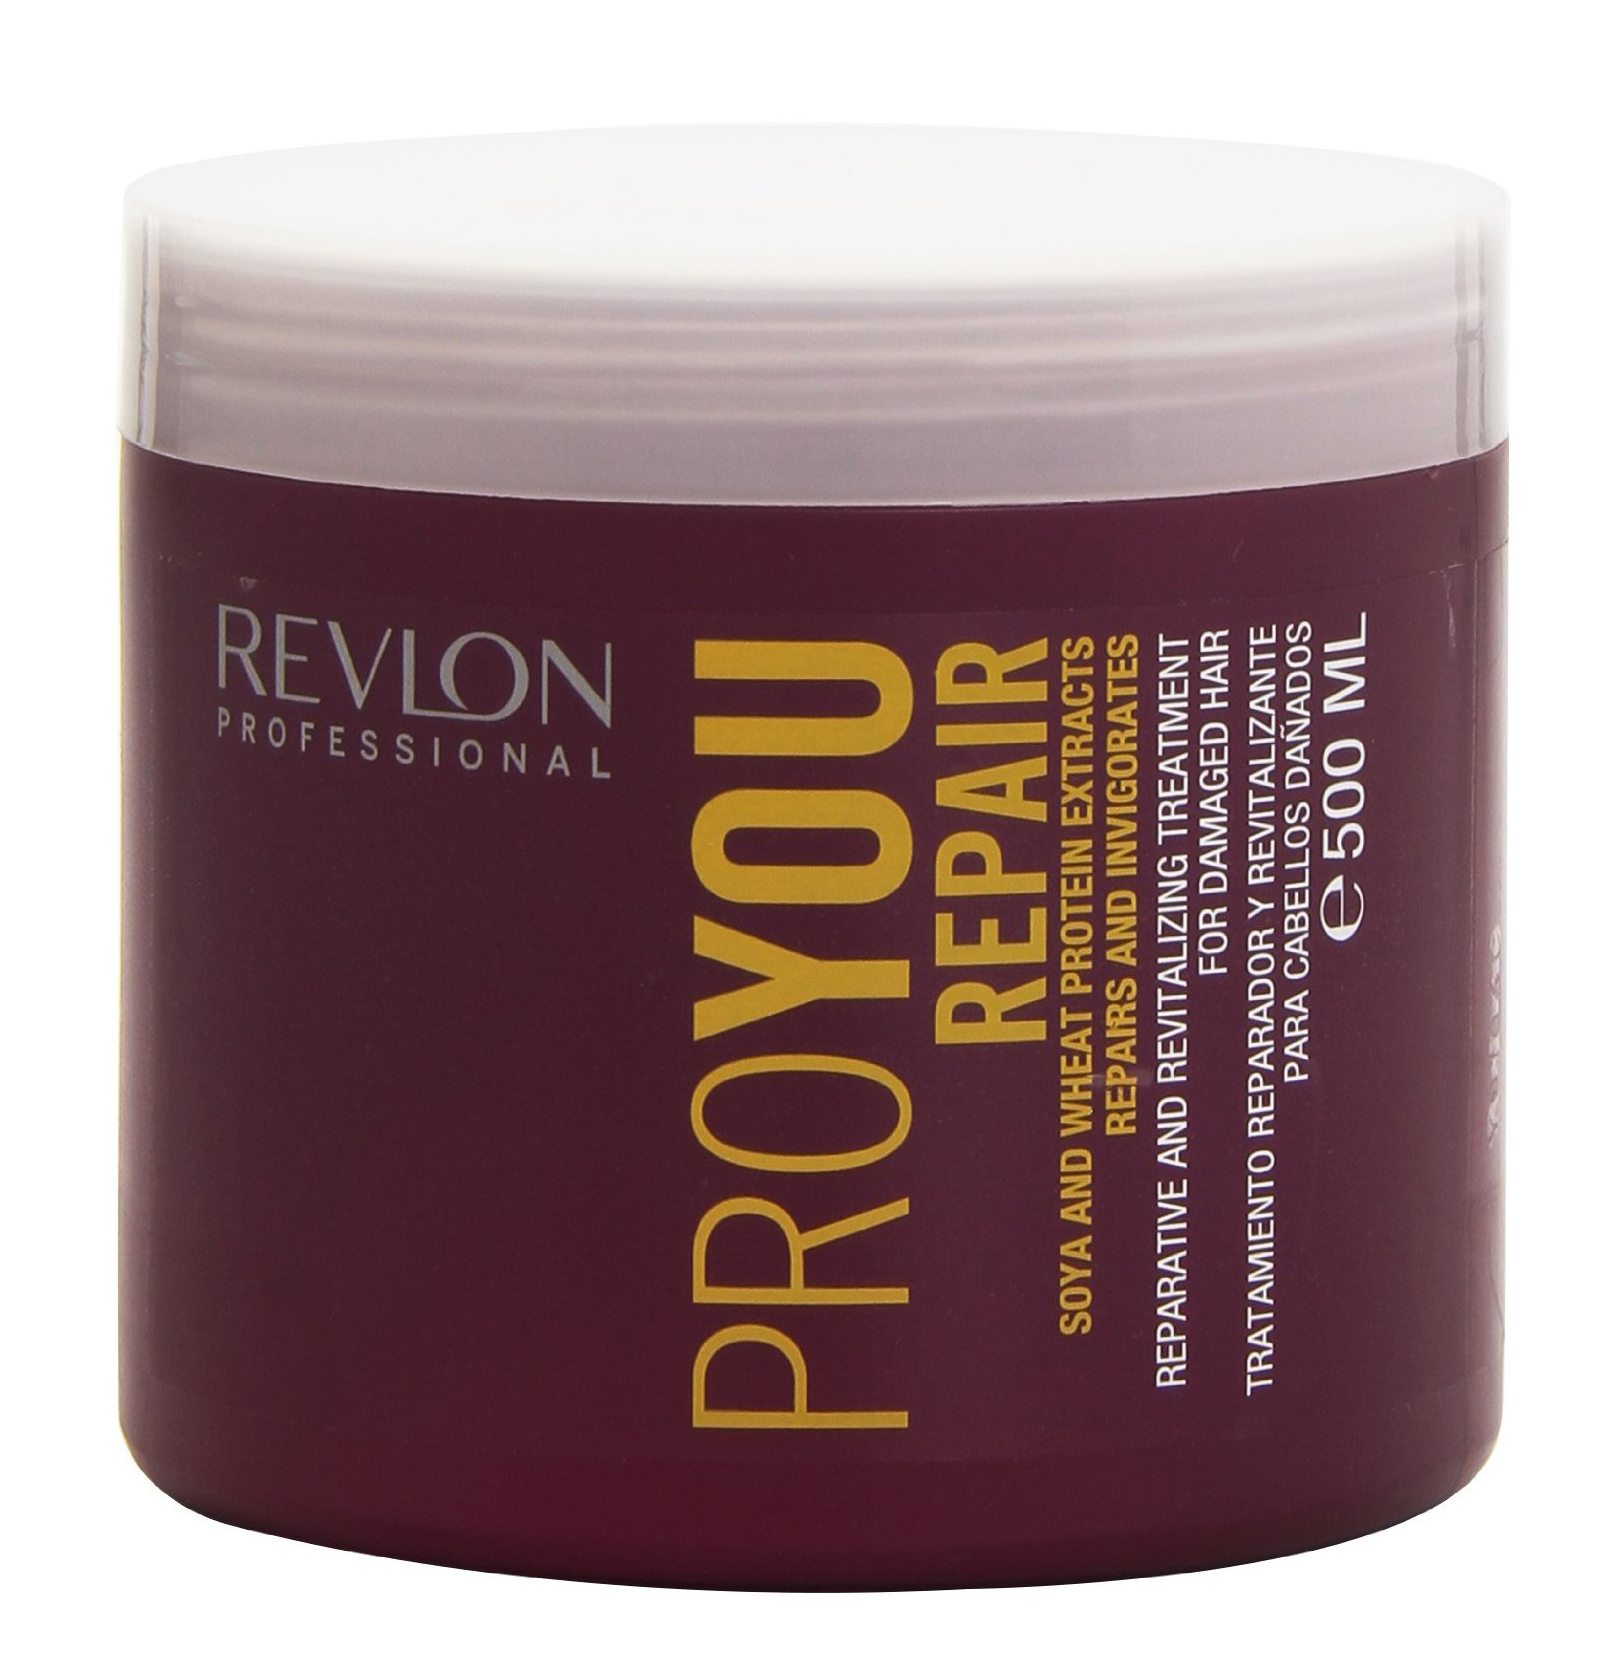 REVLON Professional PROYOU Repair Treatment For Damaged Hair Маска восстанавливающая (500 ml) 7237814000